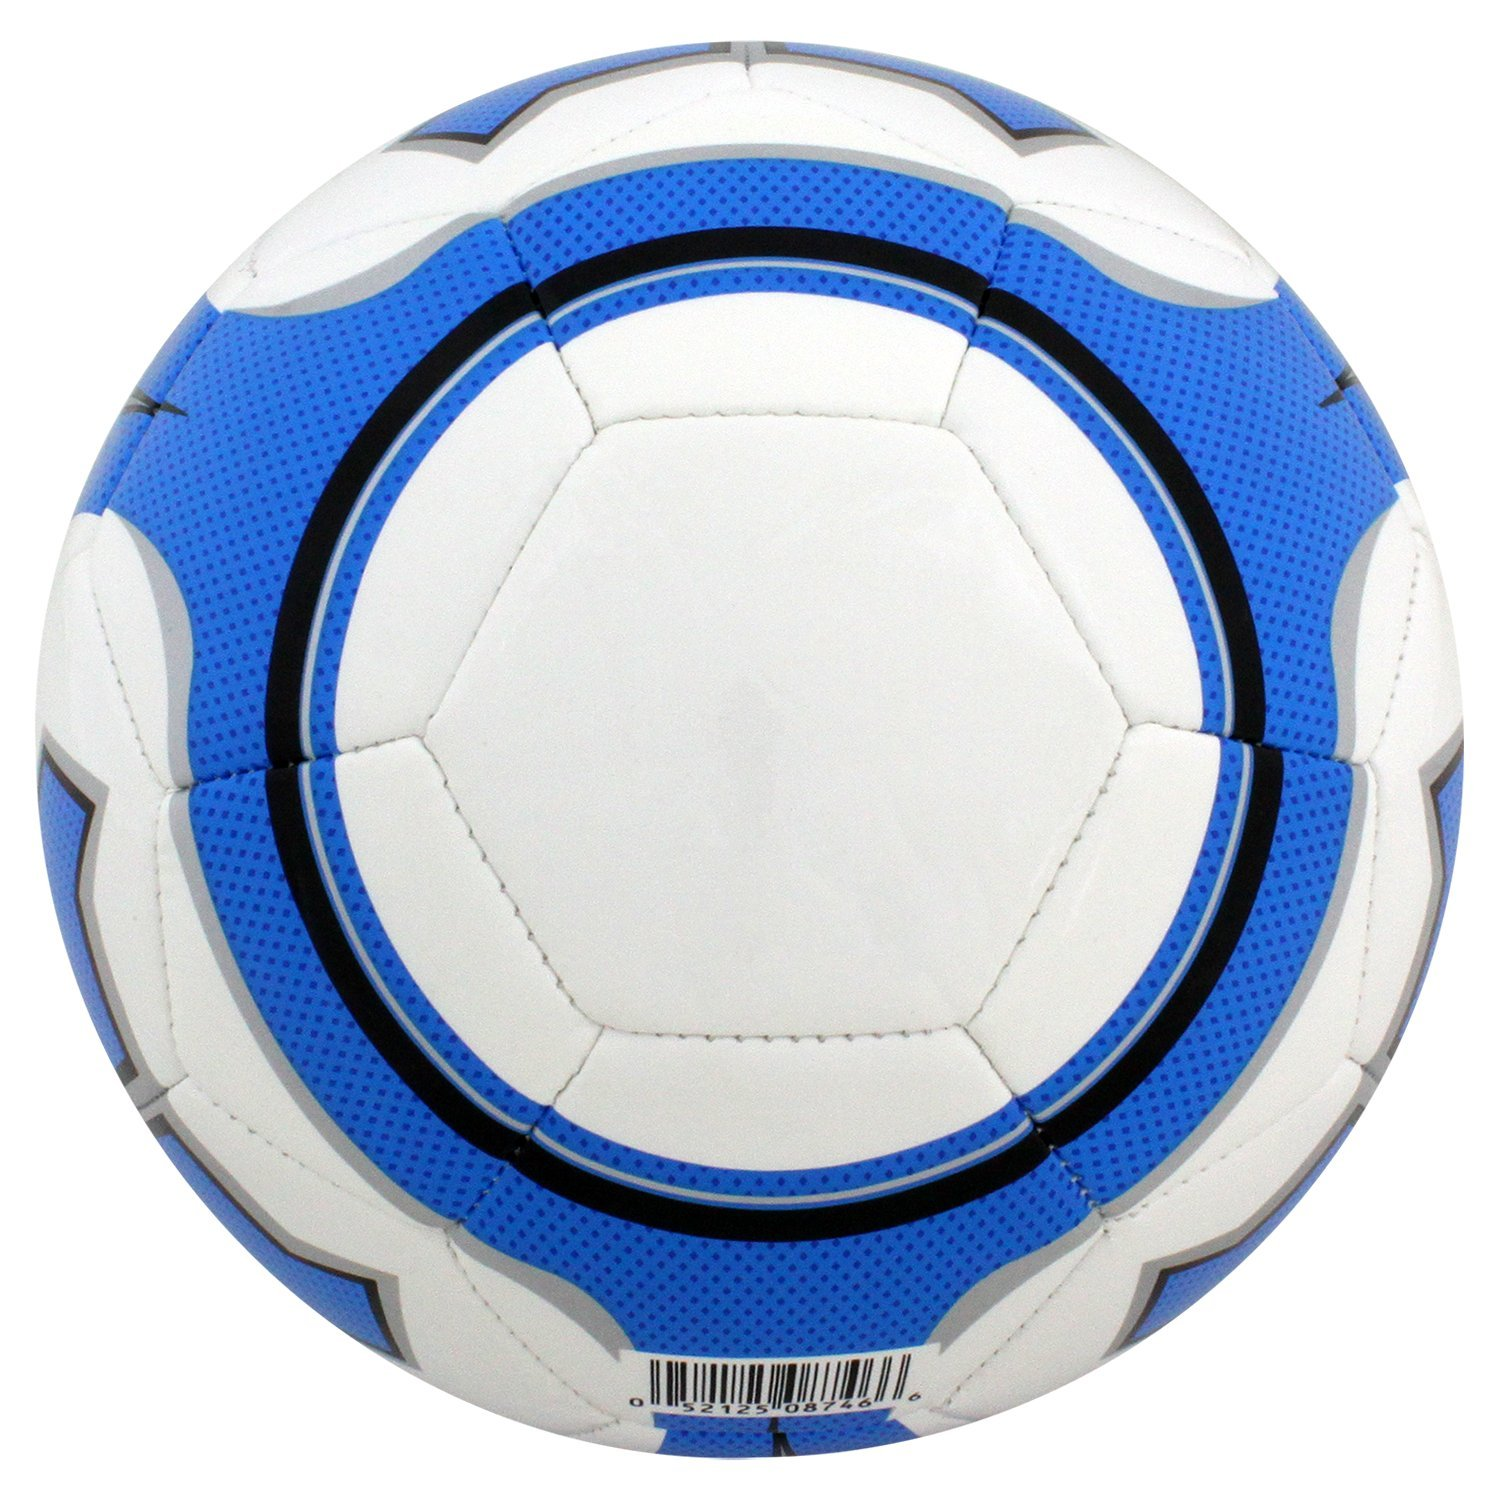 Baden Z-Series balón de fútbol, Royal/Blanco, tamaño 3: Amazon.es ...